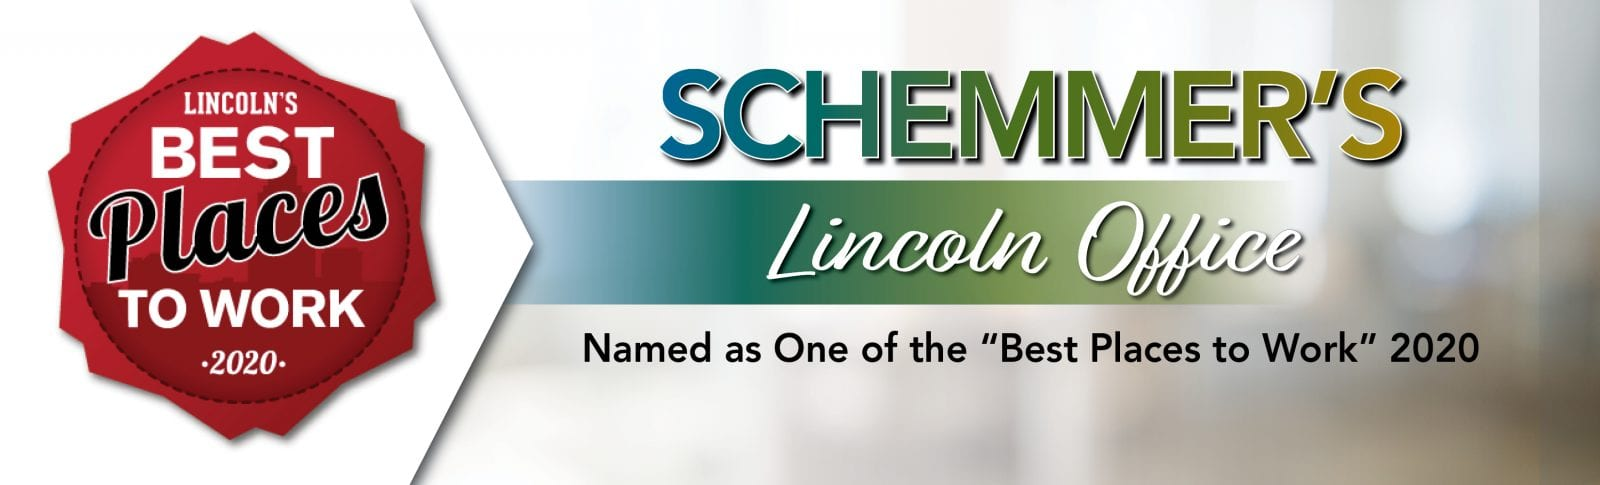 Best Places to Work Lincoln 2020 Schemmer